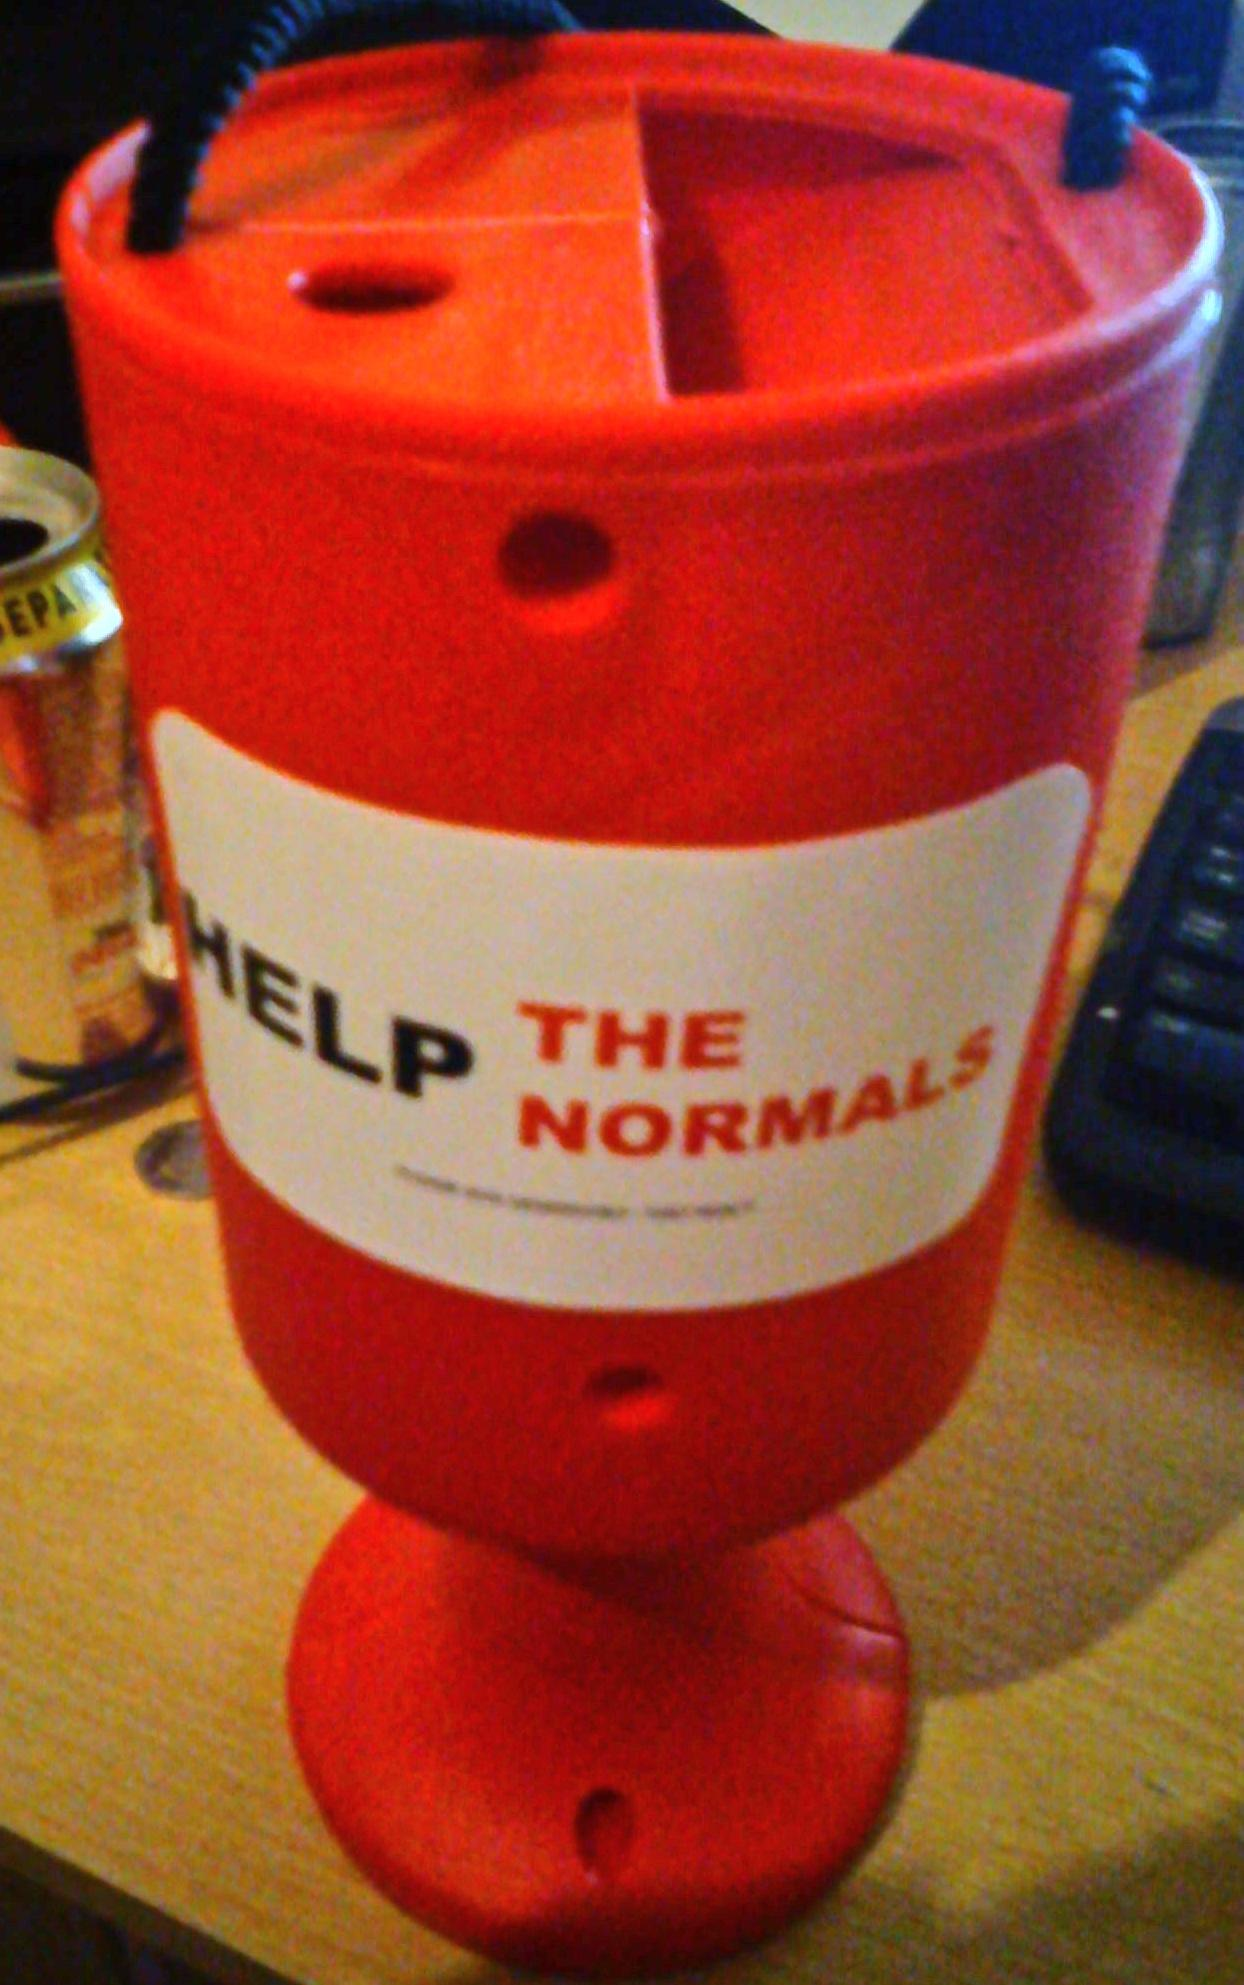 Help the Normals collecting can